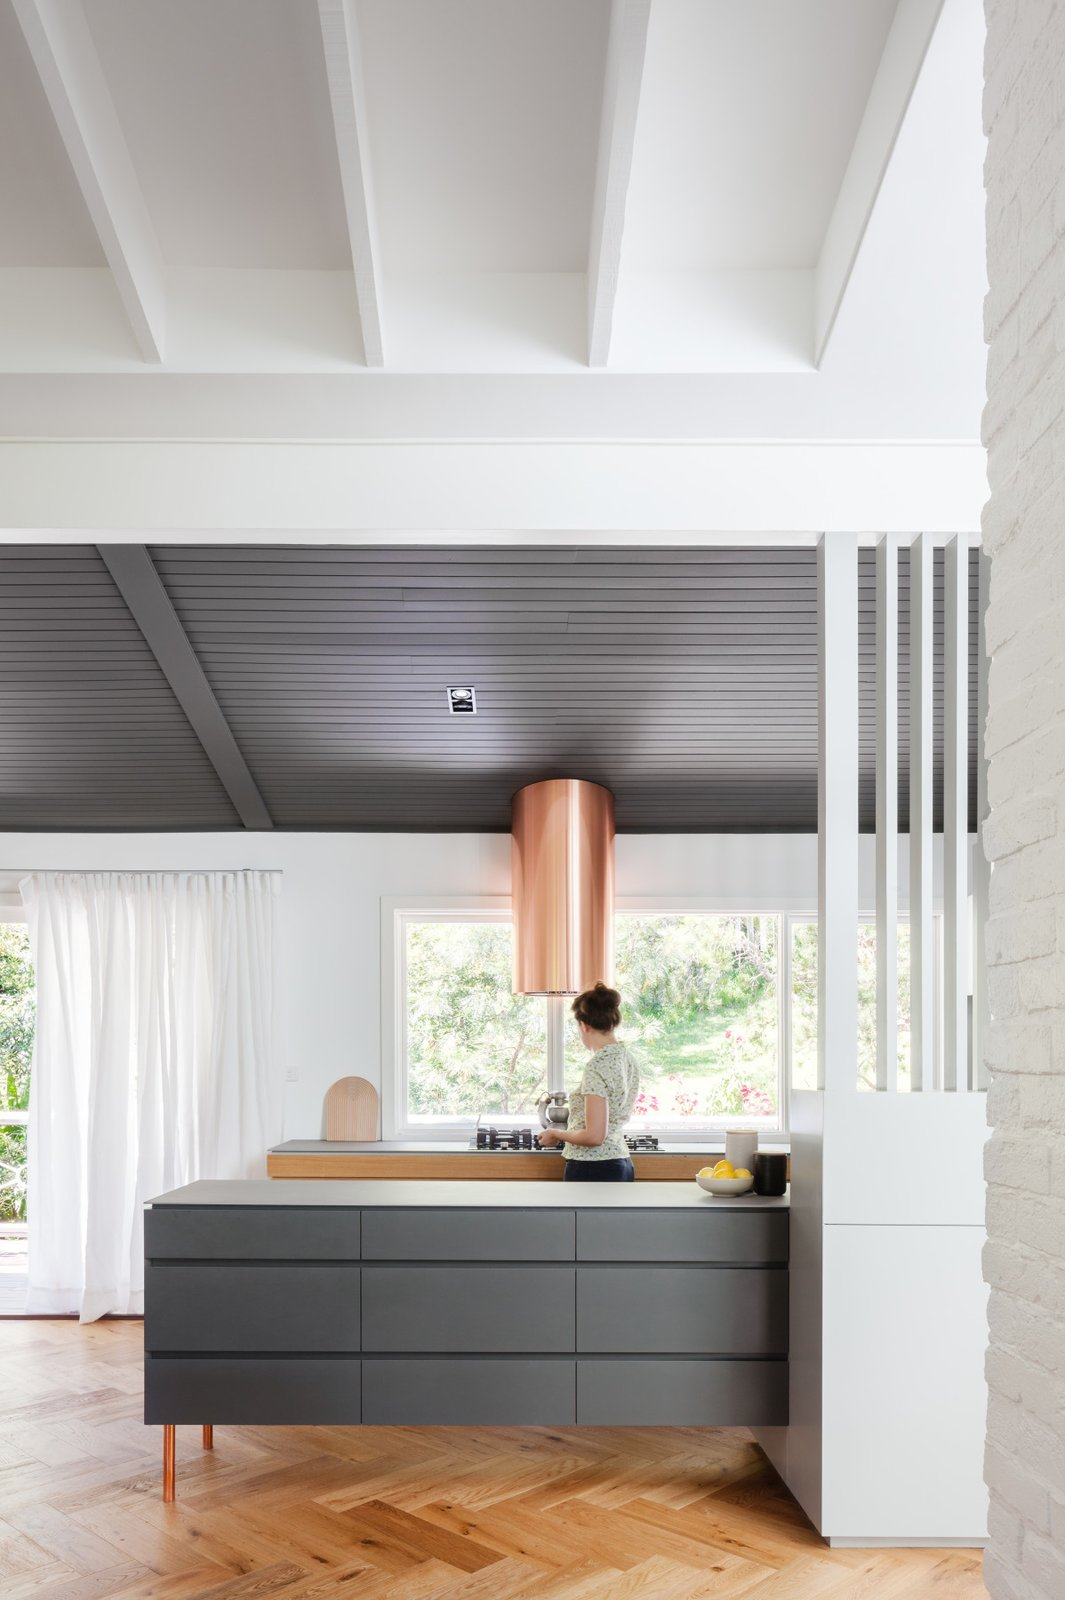 Photo 5 of 7 in Riverview by Nobbs Radford Architects